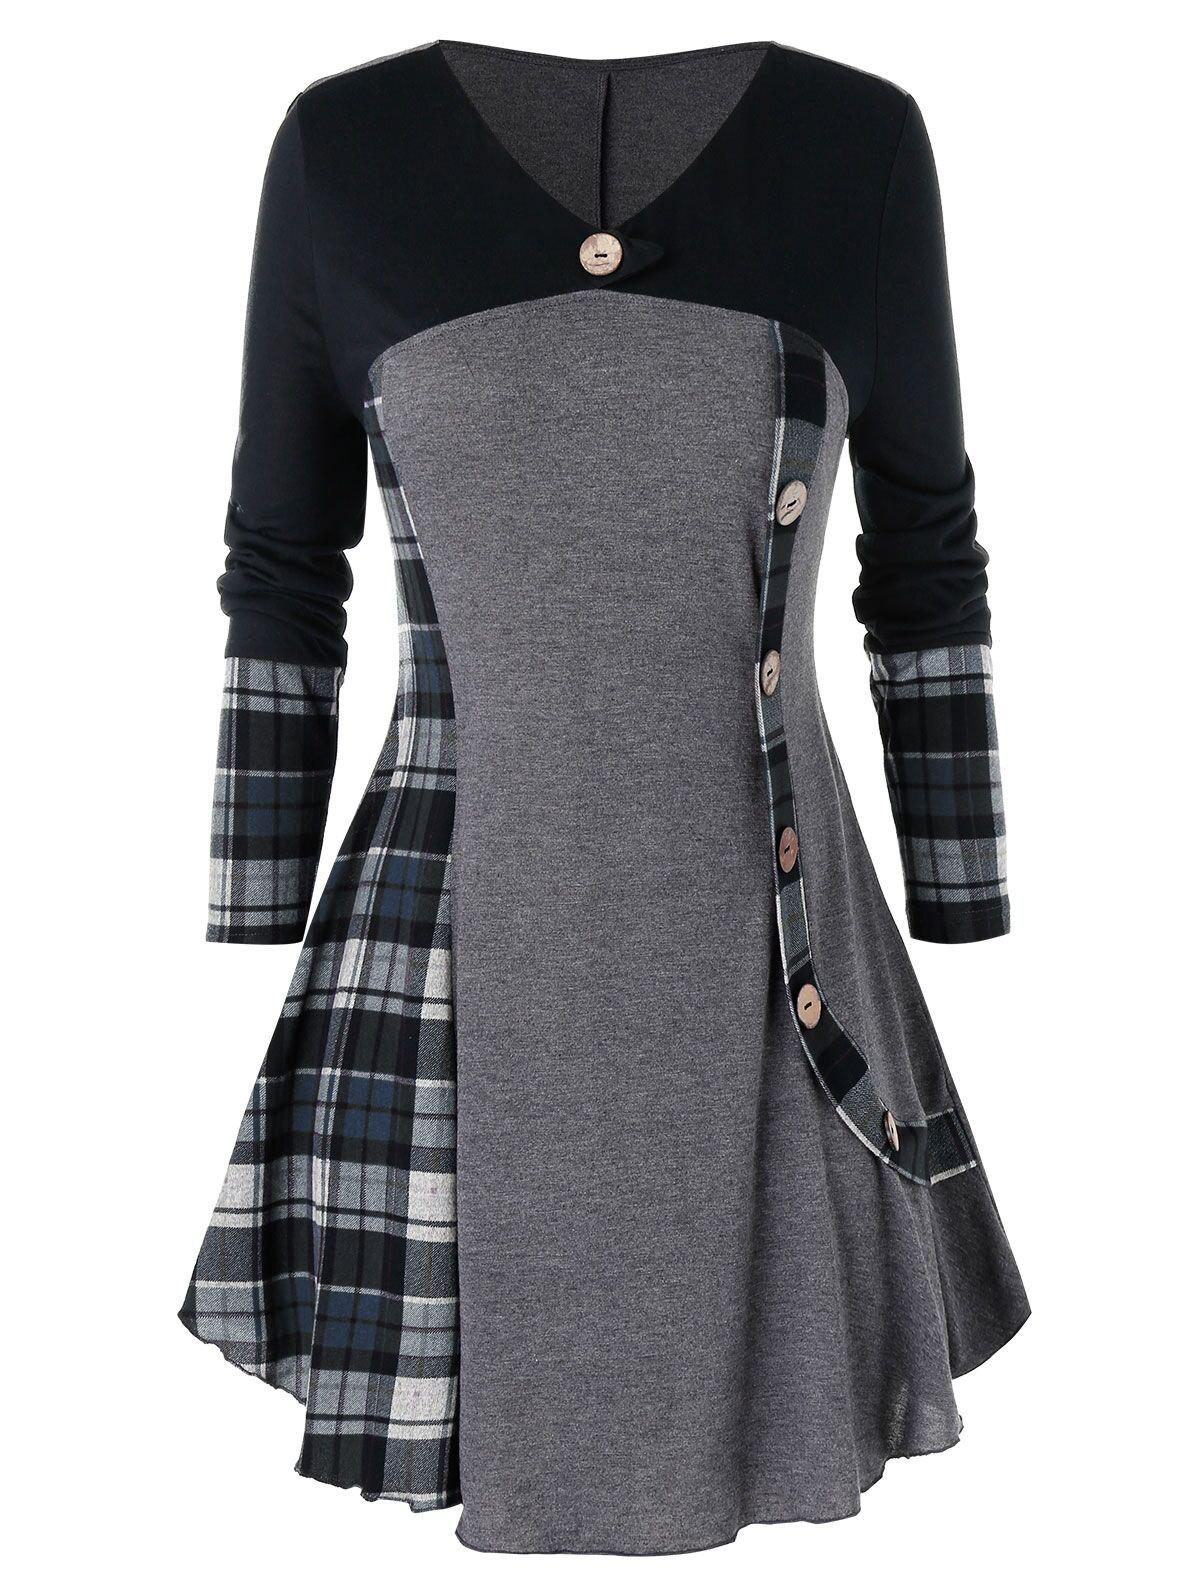 Plus Size Plaid Tunic T Shirt - CLOUDY GRAY 5X